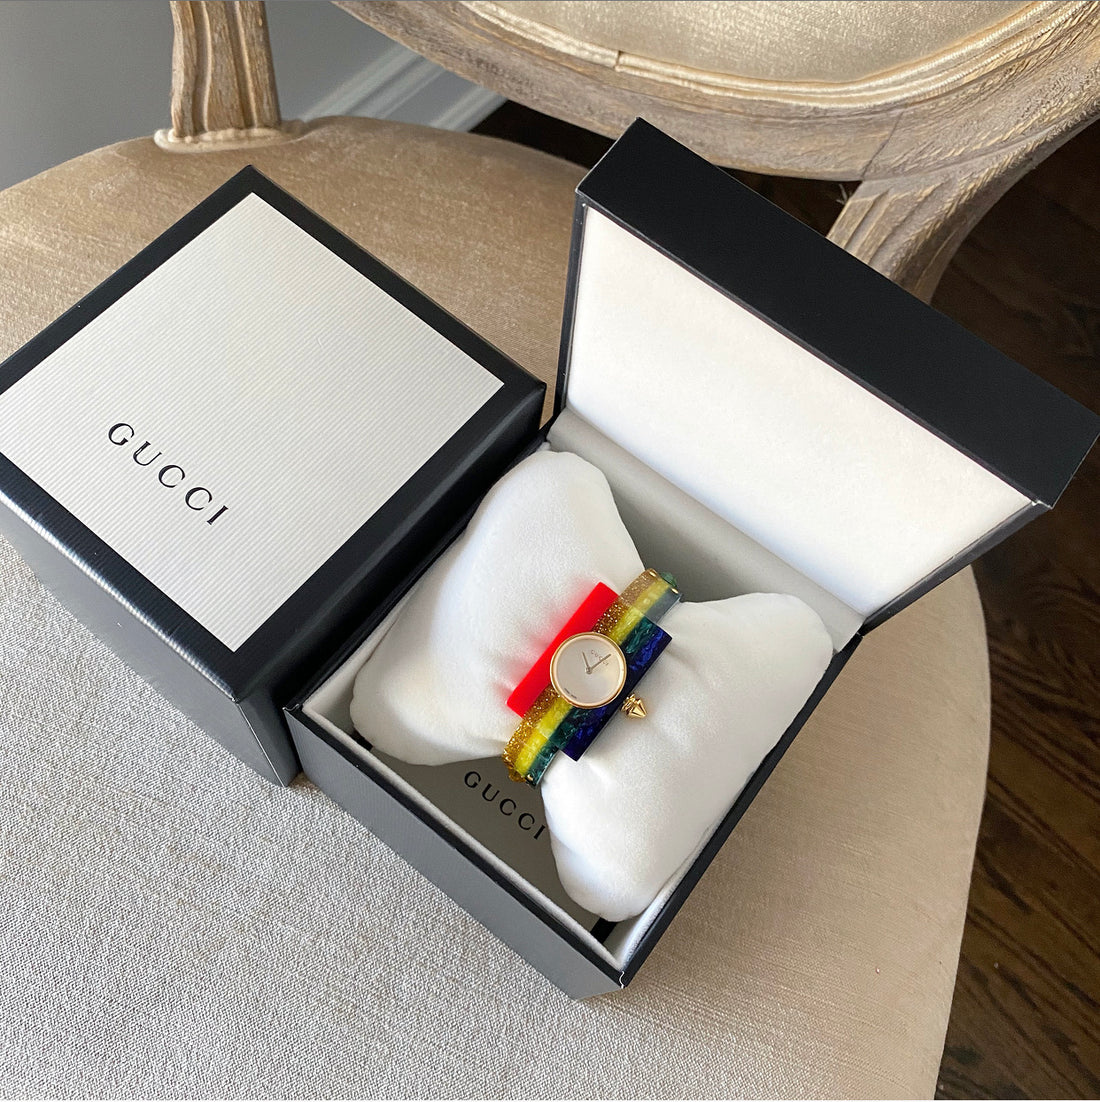 Gucci 2020 Vintage Web Watch 143.5 Rainbow Stripe Bracelet Watch